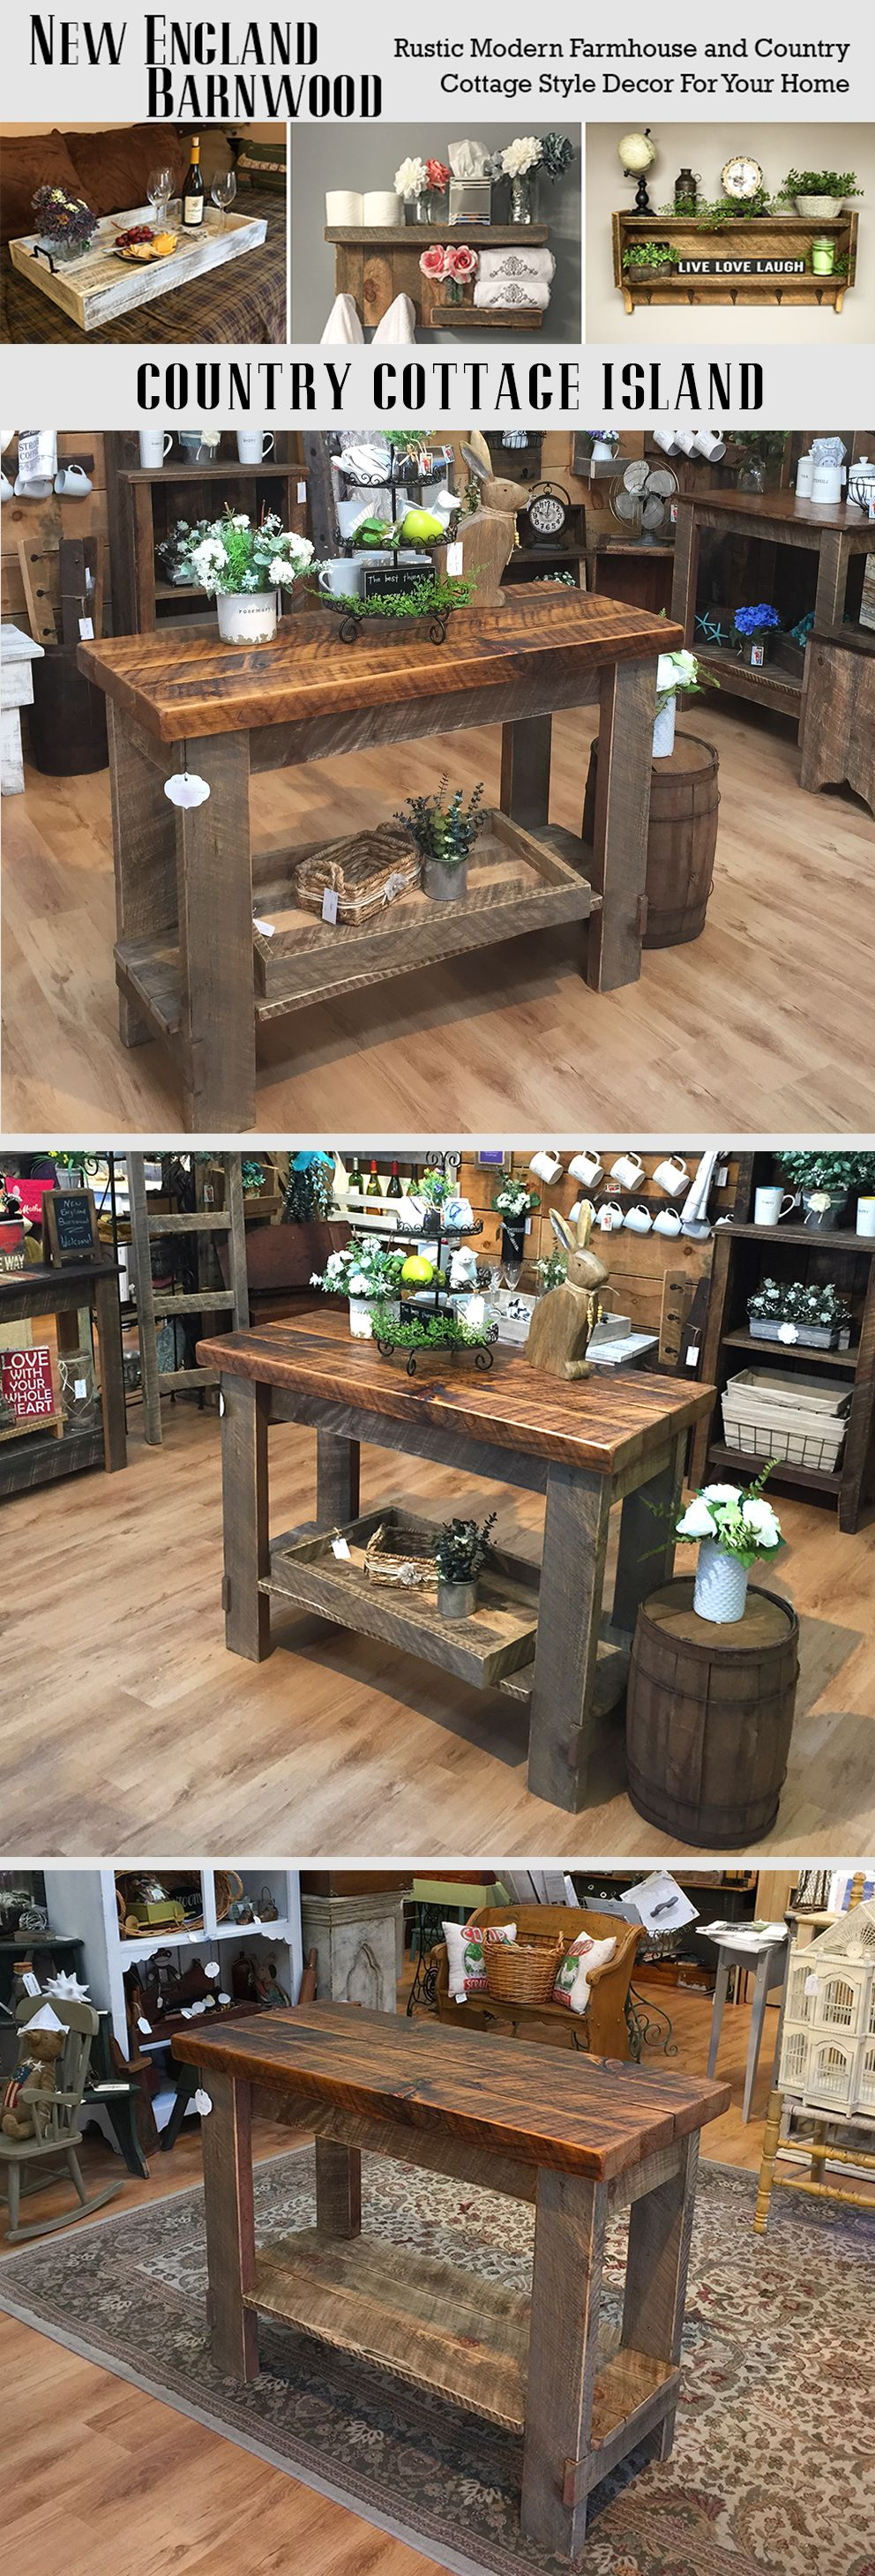 This farmhouse kitchen island is adorablevery rustic and primitive